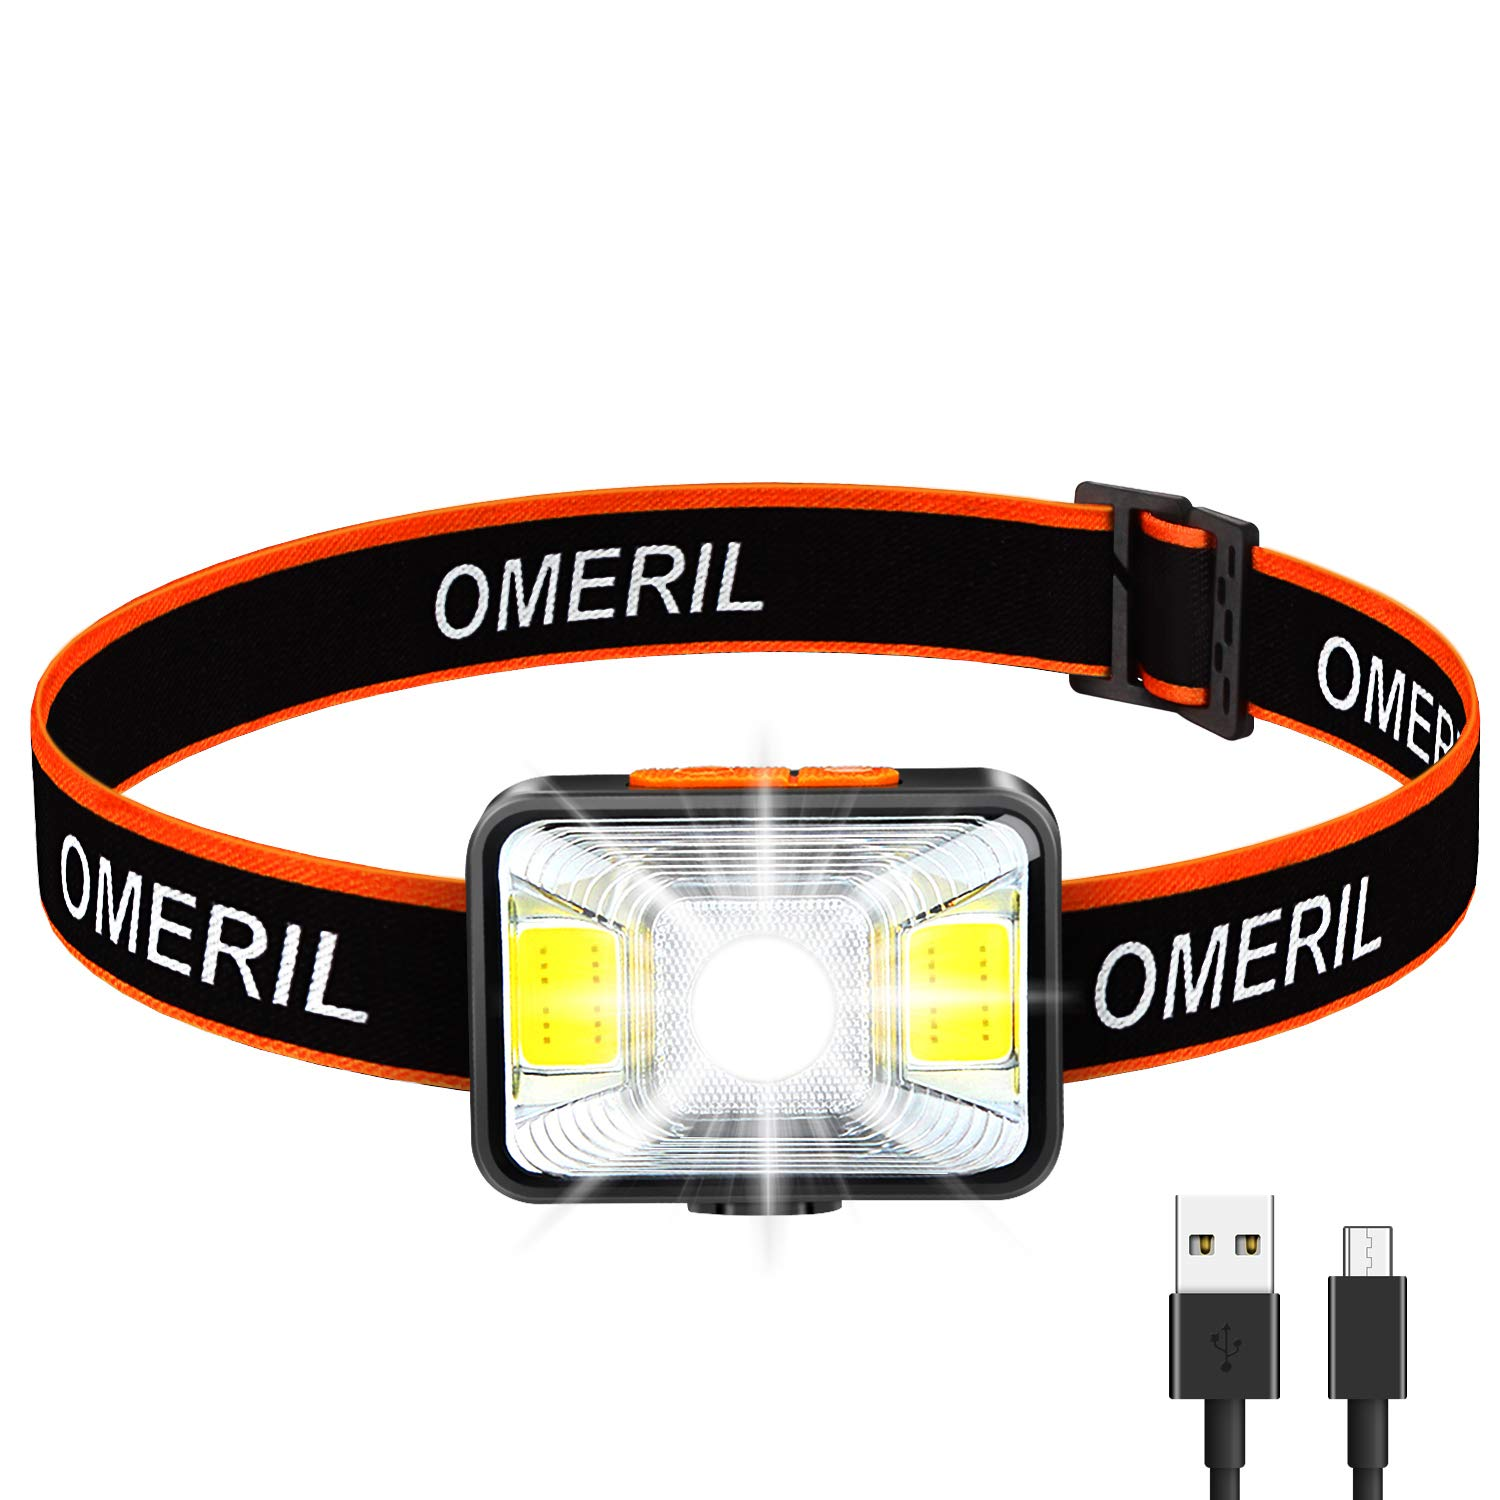 c742ec07c OMERIL Linterna Frontal LED USB Recargable, Linterna Cabeza Super  Brillante, 5 Modos de Blanco